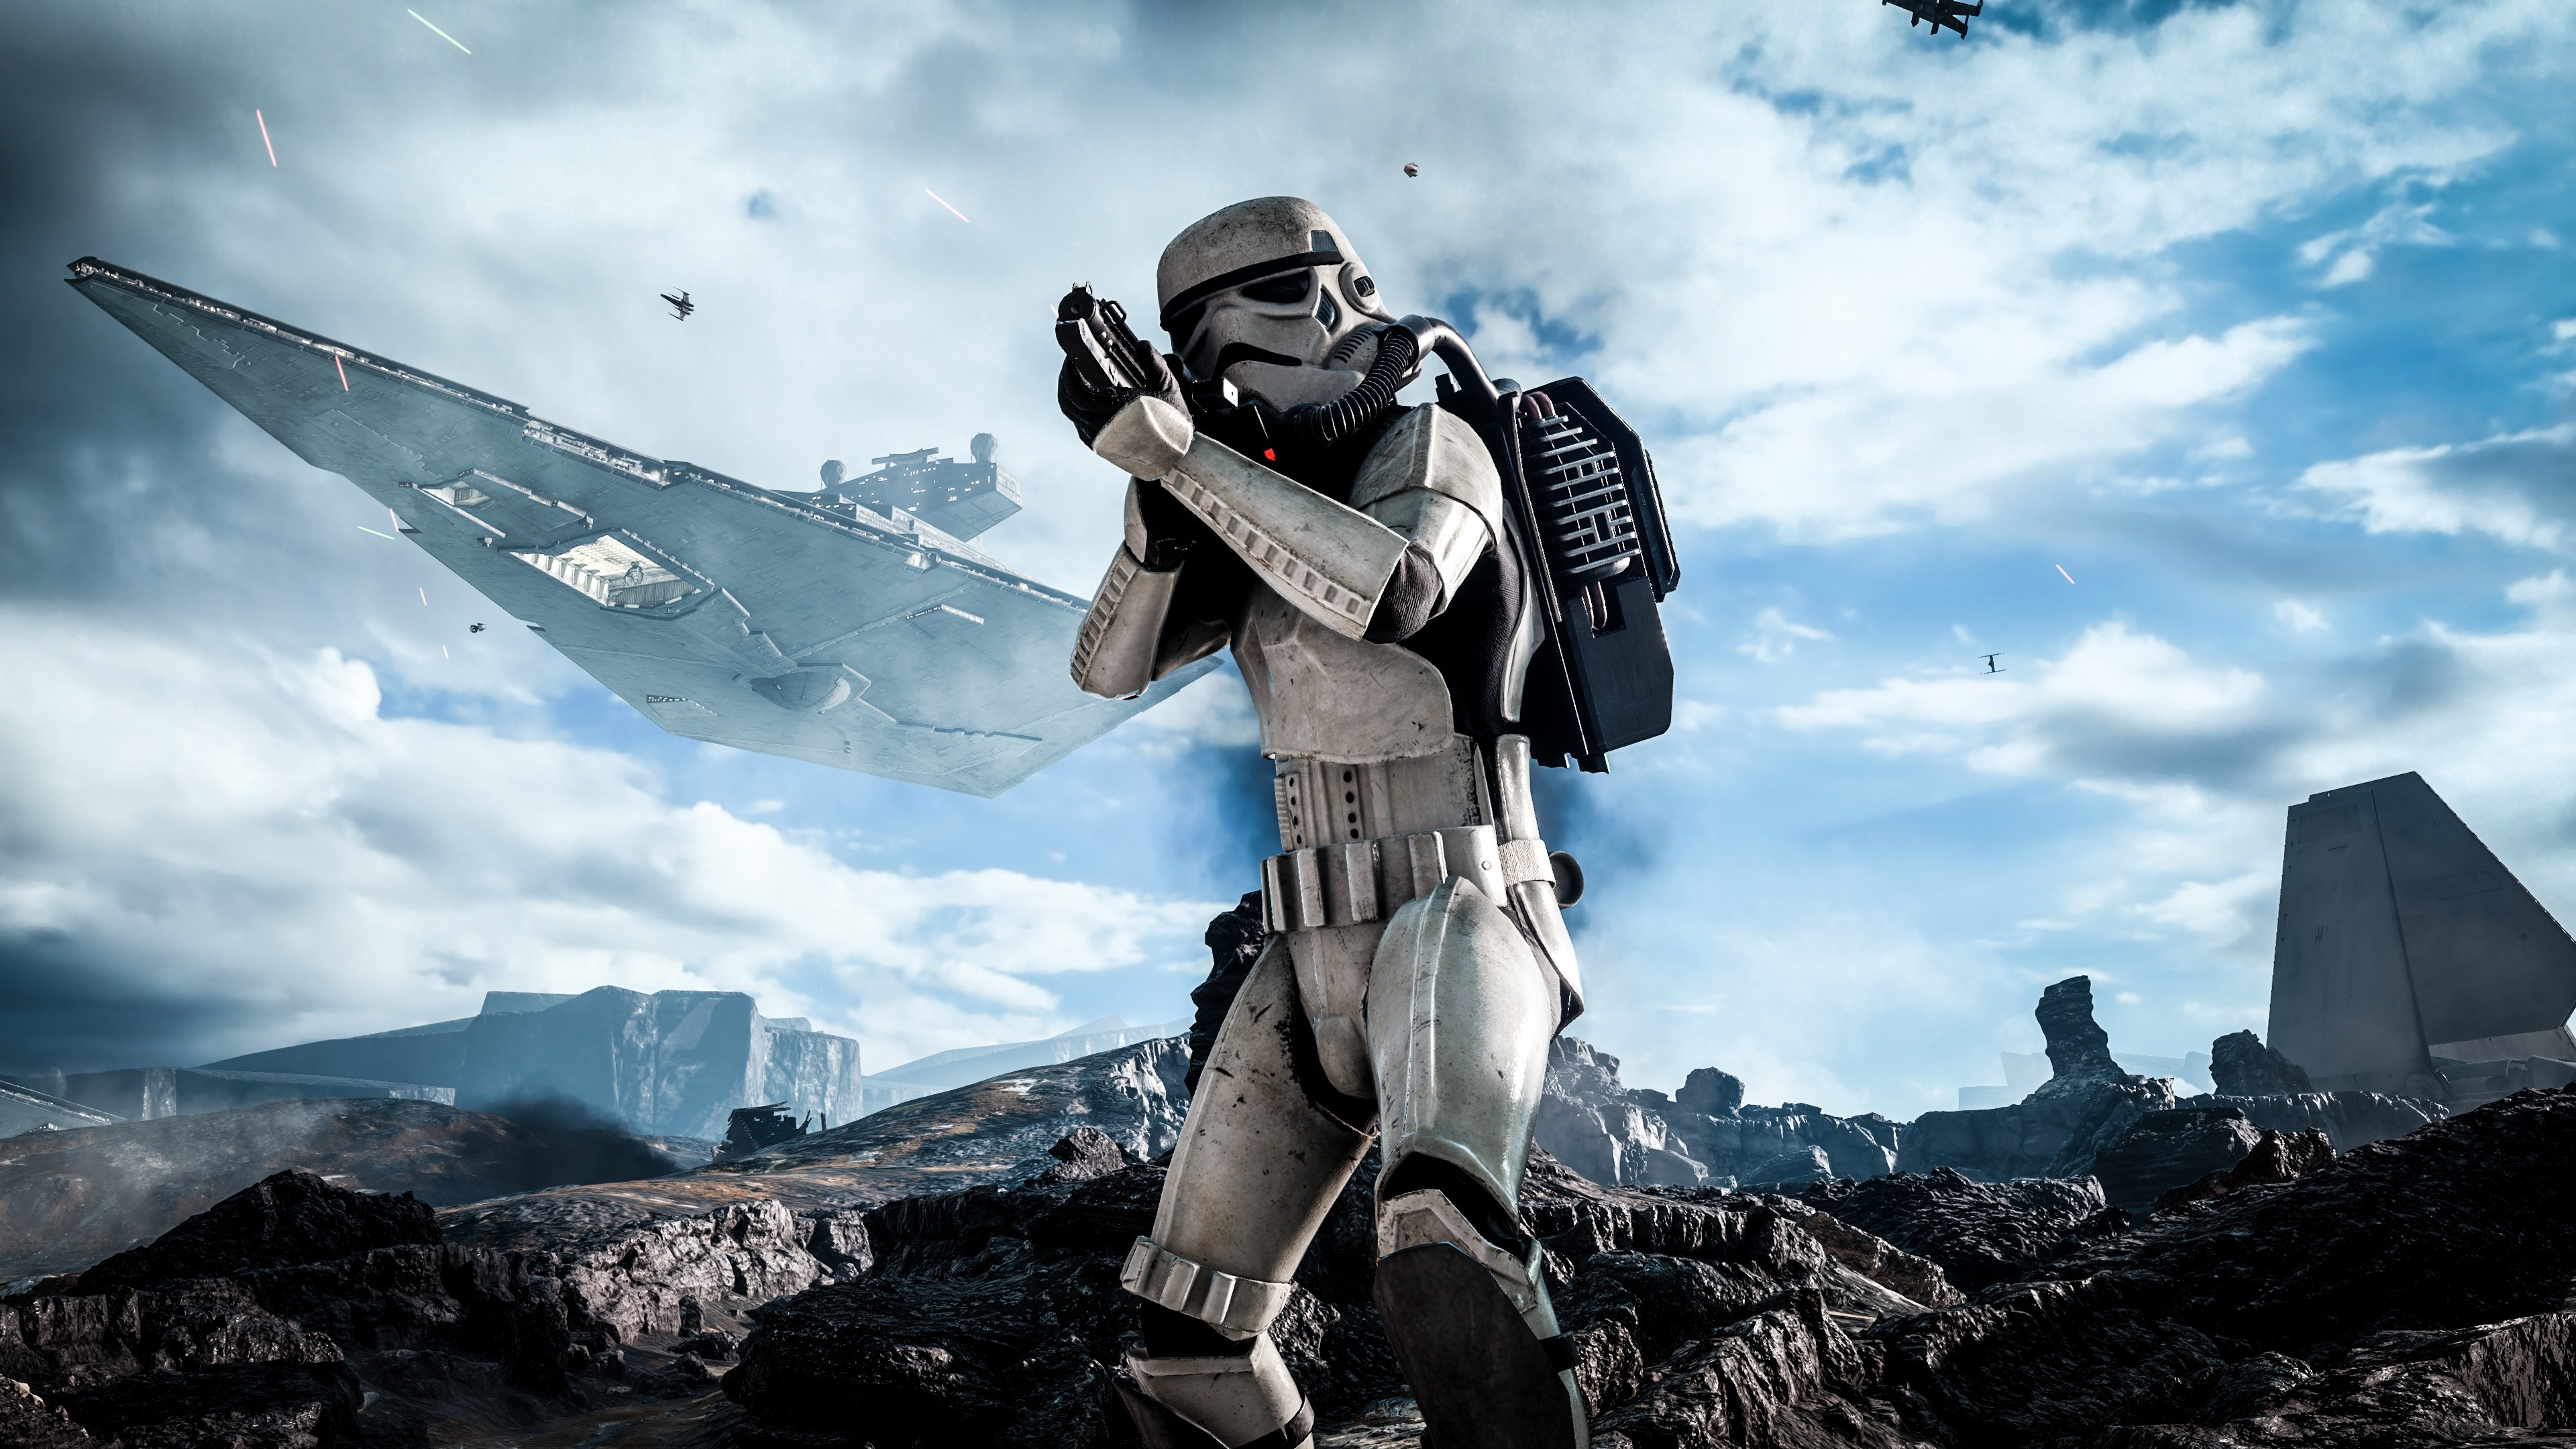 3840x2160 Preview wallpaper star wars, battlefront, electronic arts